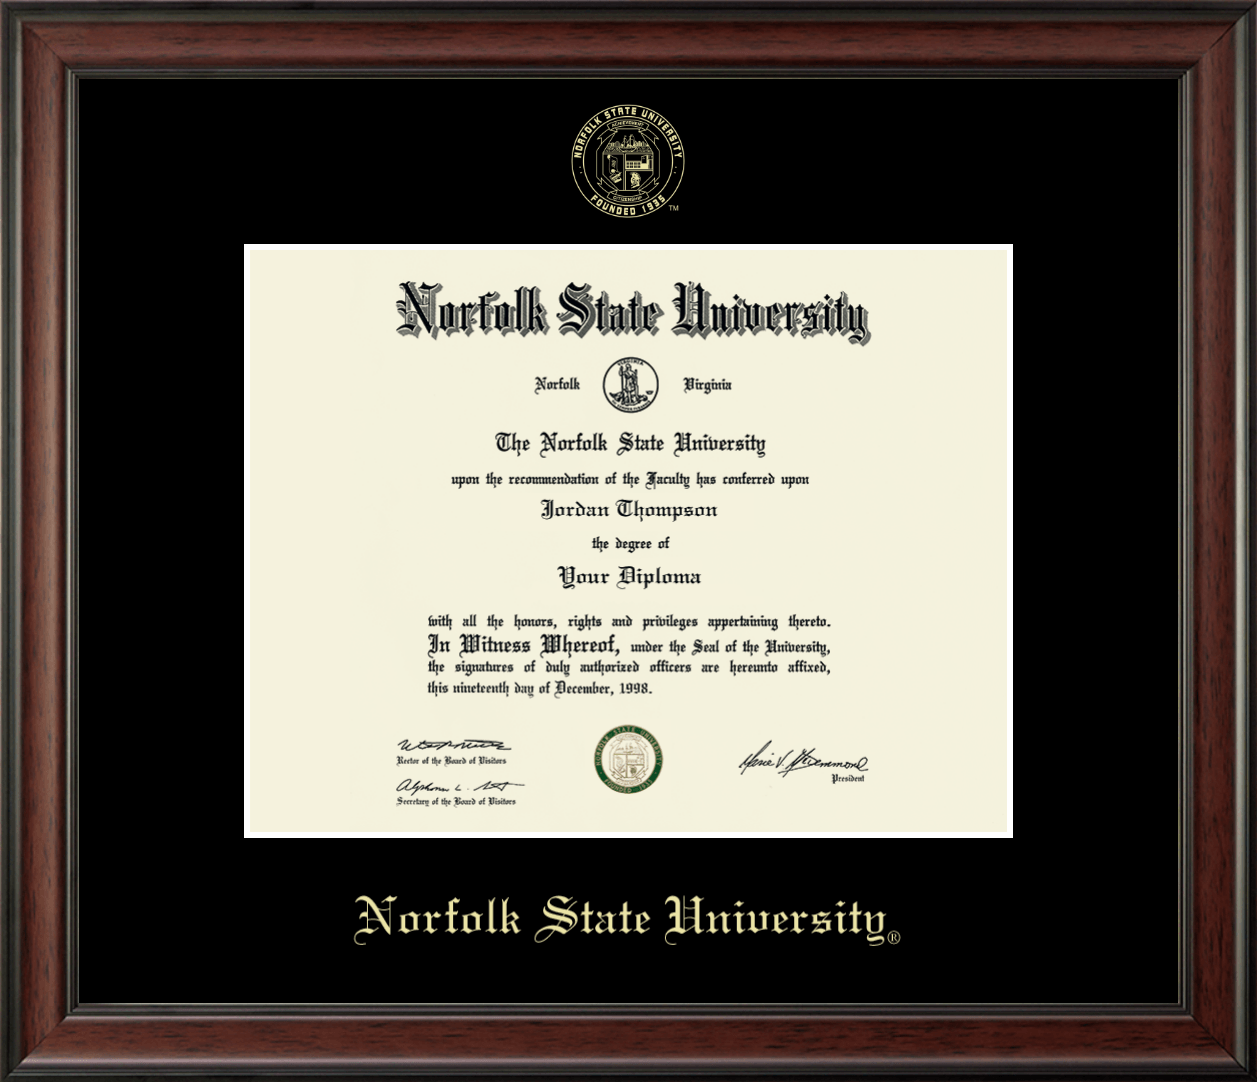 Norfolk State University Gold Embossed Diploma Frame In Studio Item 225289 From Norfolk State University